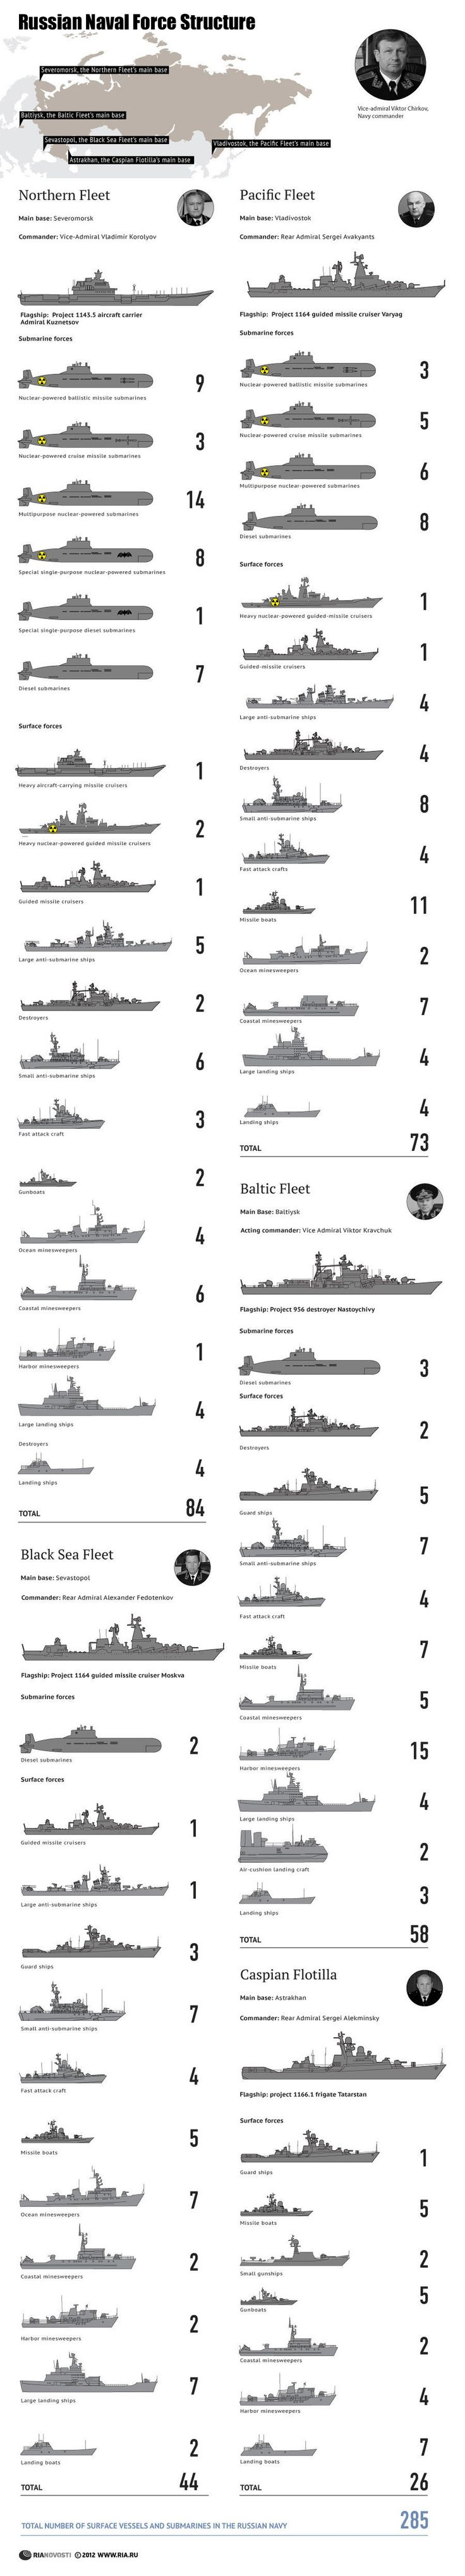 00 RIA-Novosti Infographic. Russian Naval Force Structure. 2012